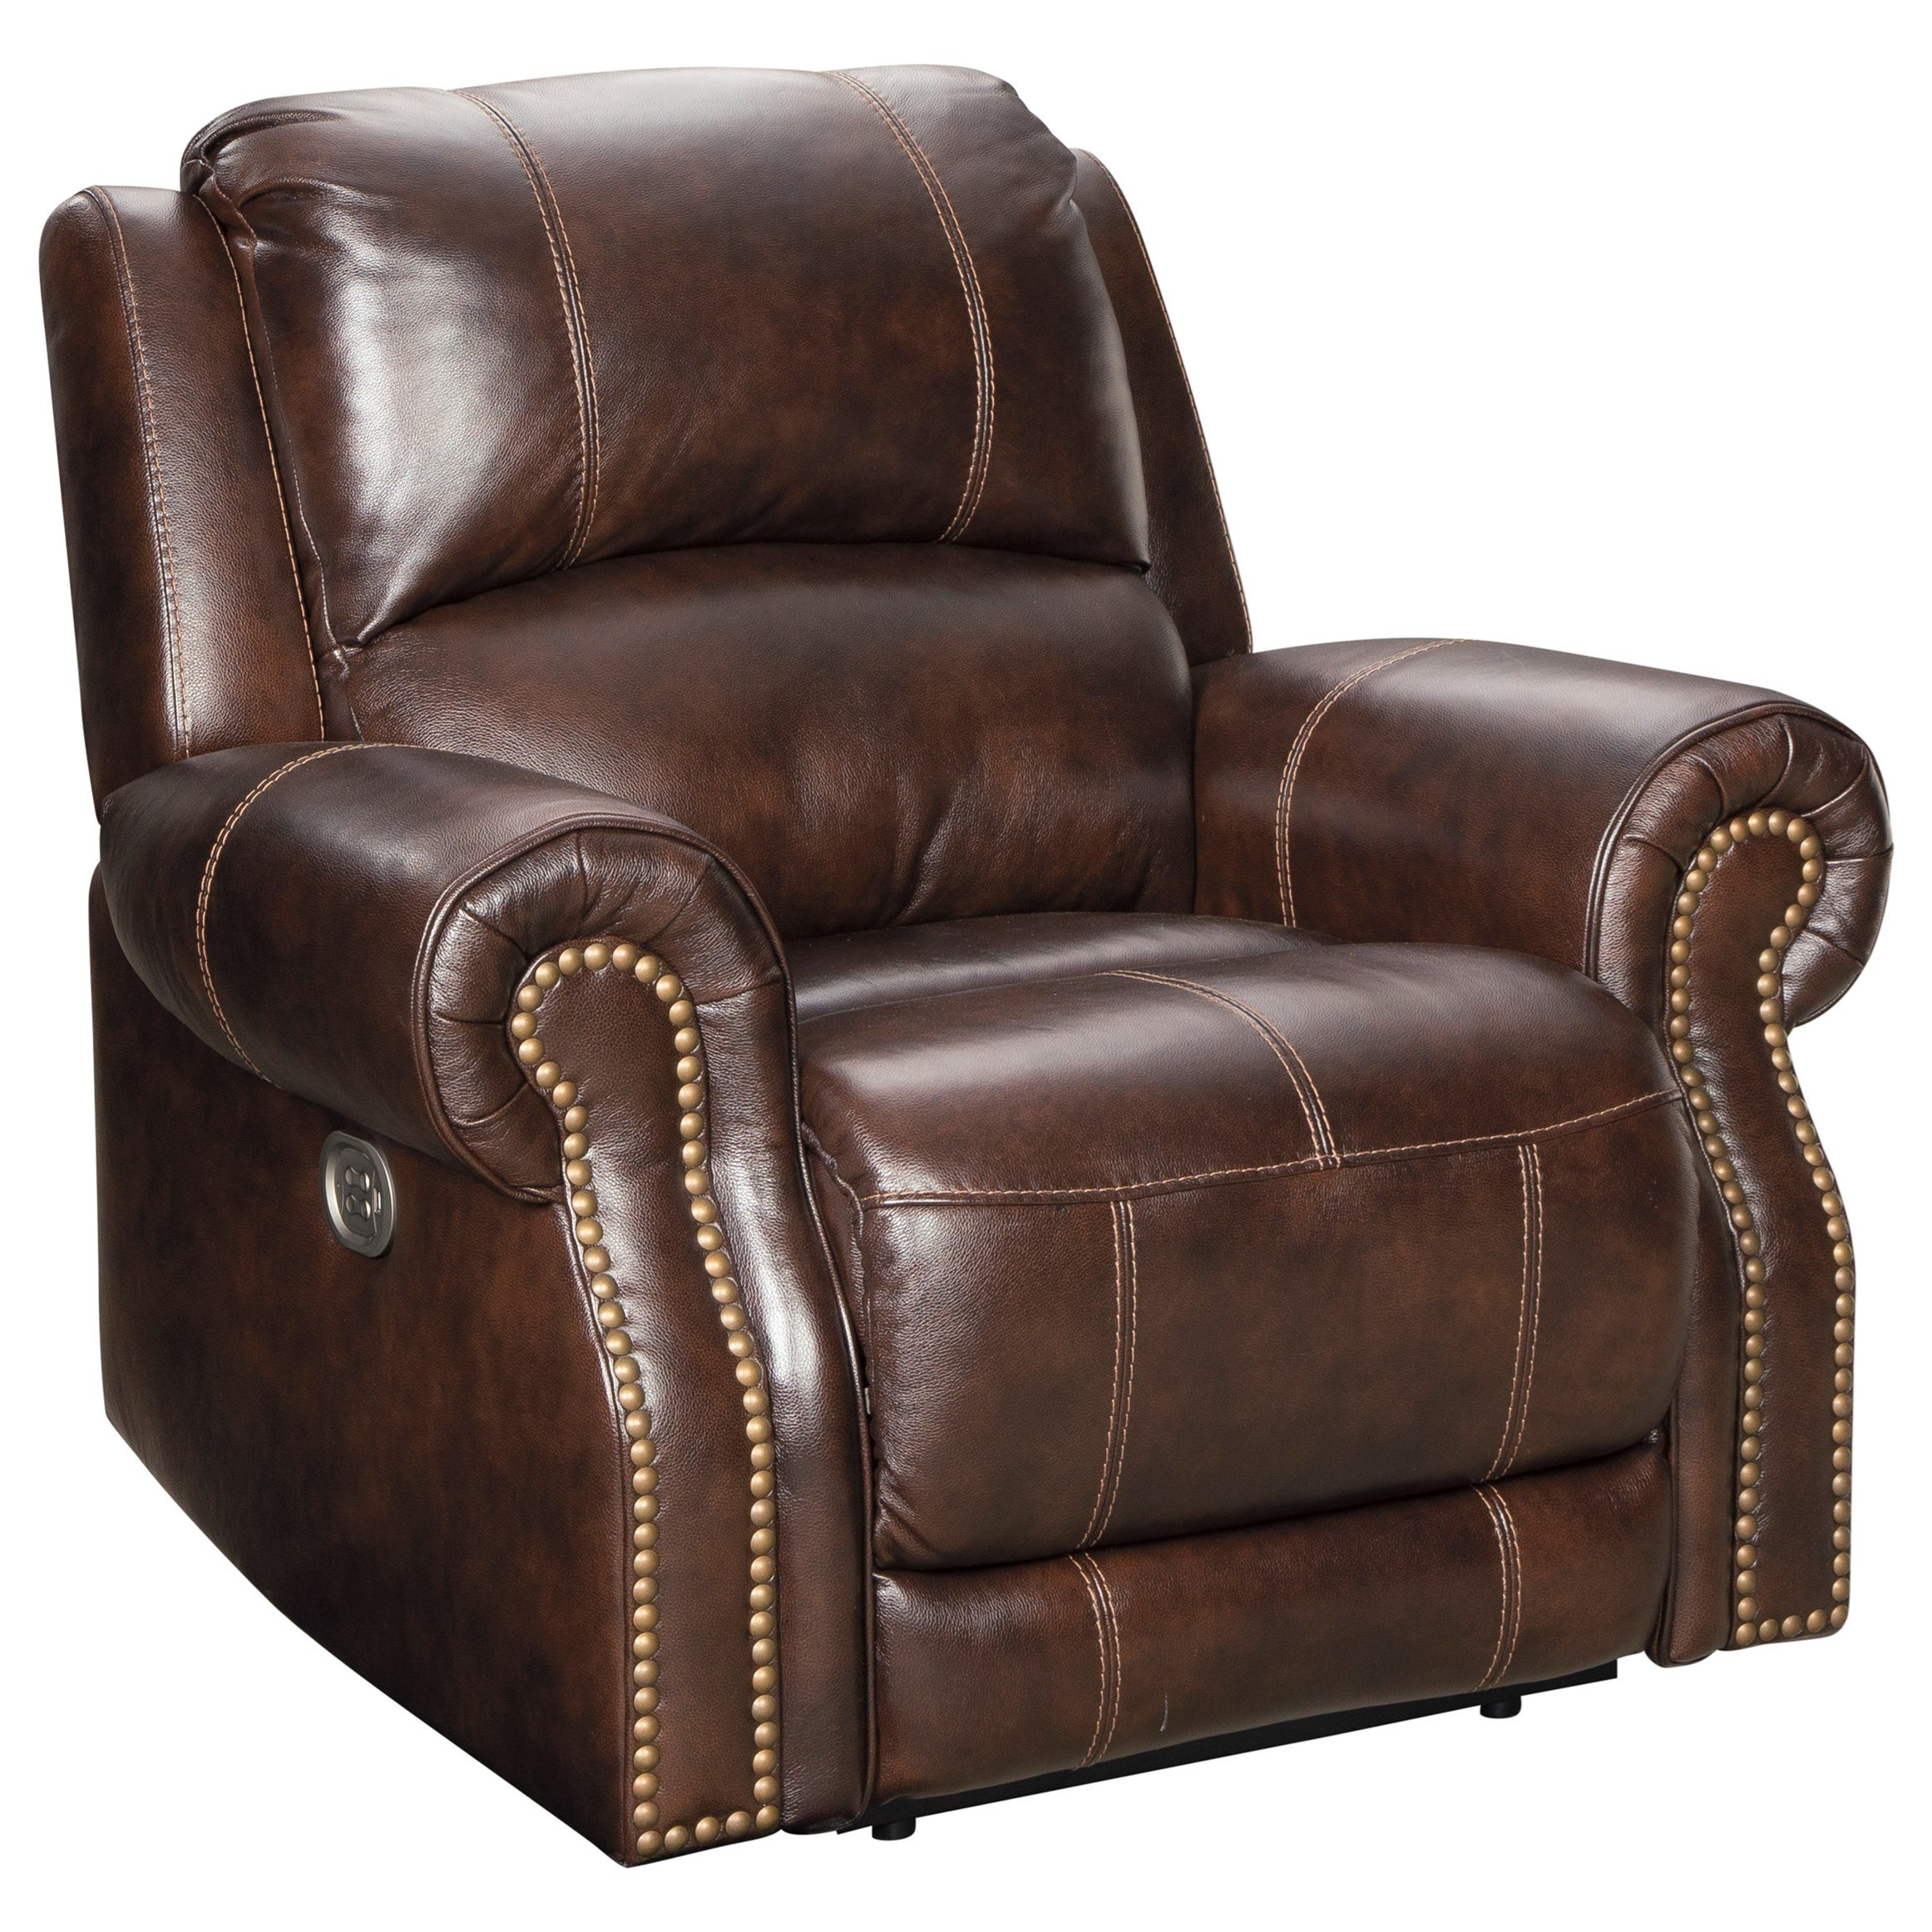 Buncrana Power Recliner by Ashley (Signature Design) at Johnny Janosik